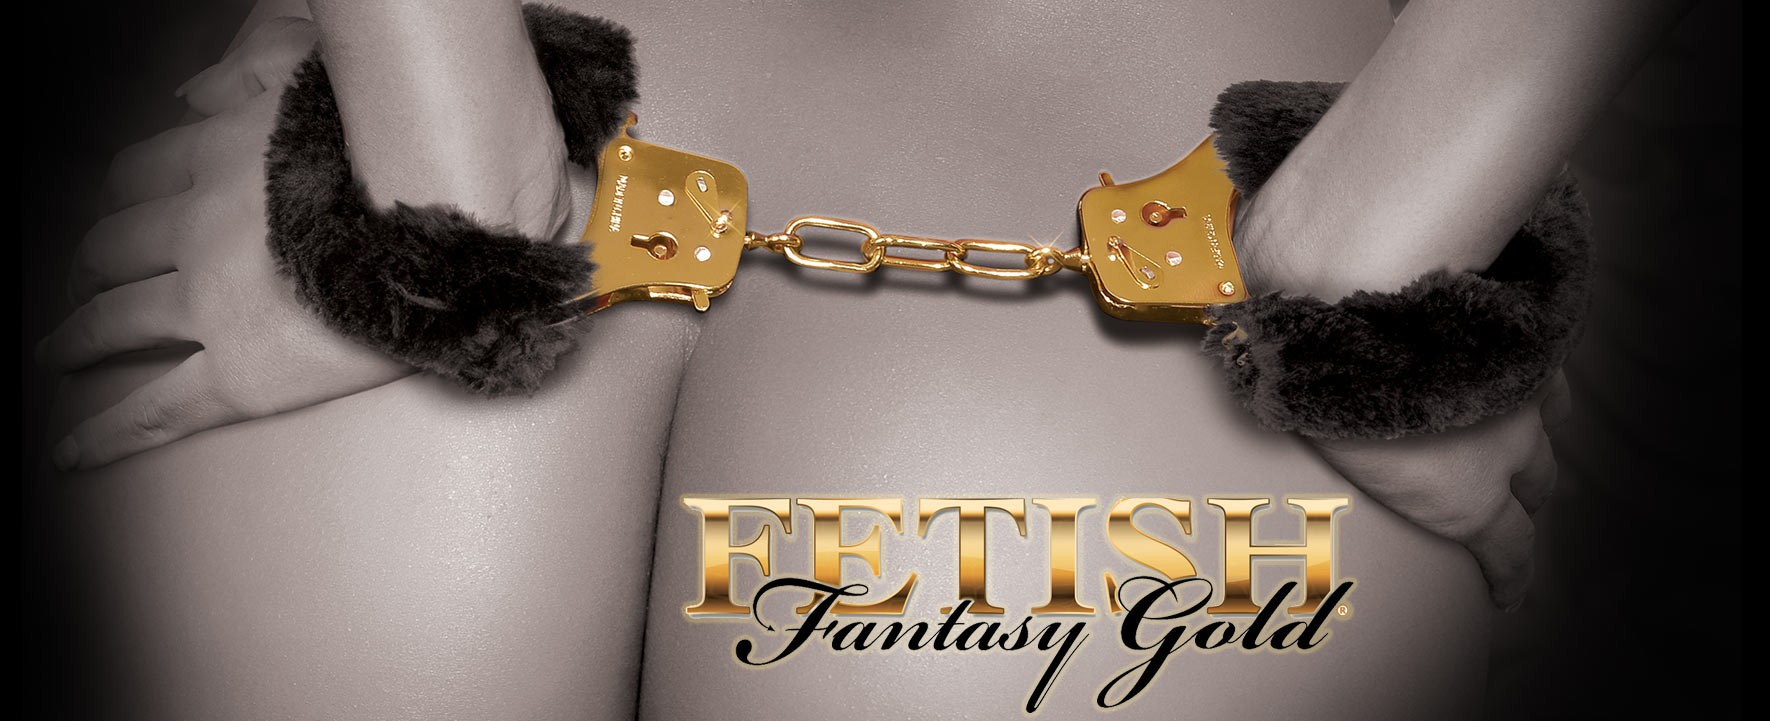 Fetish Fantasy Gold Bondage Collection